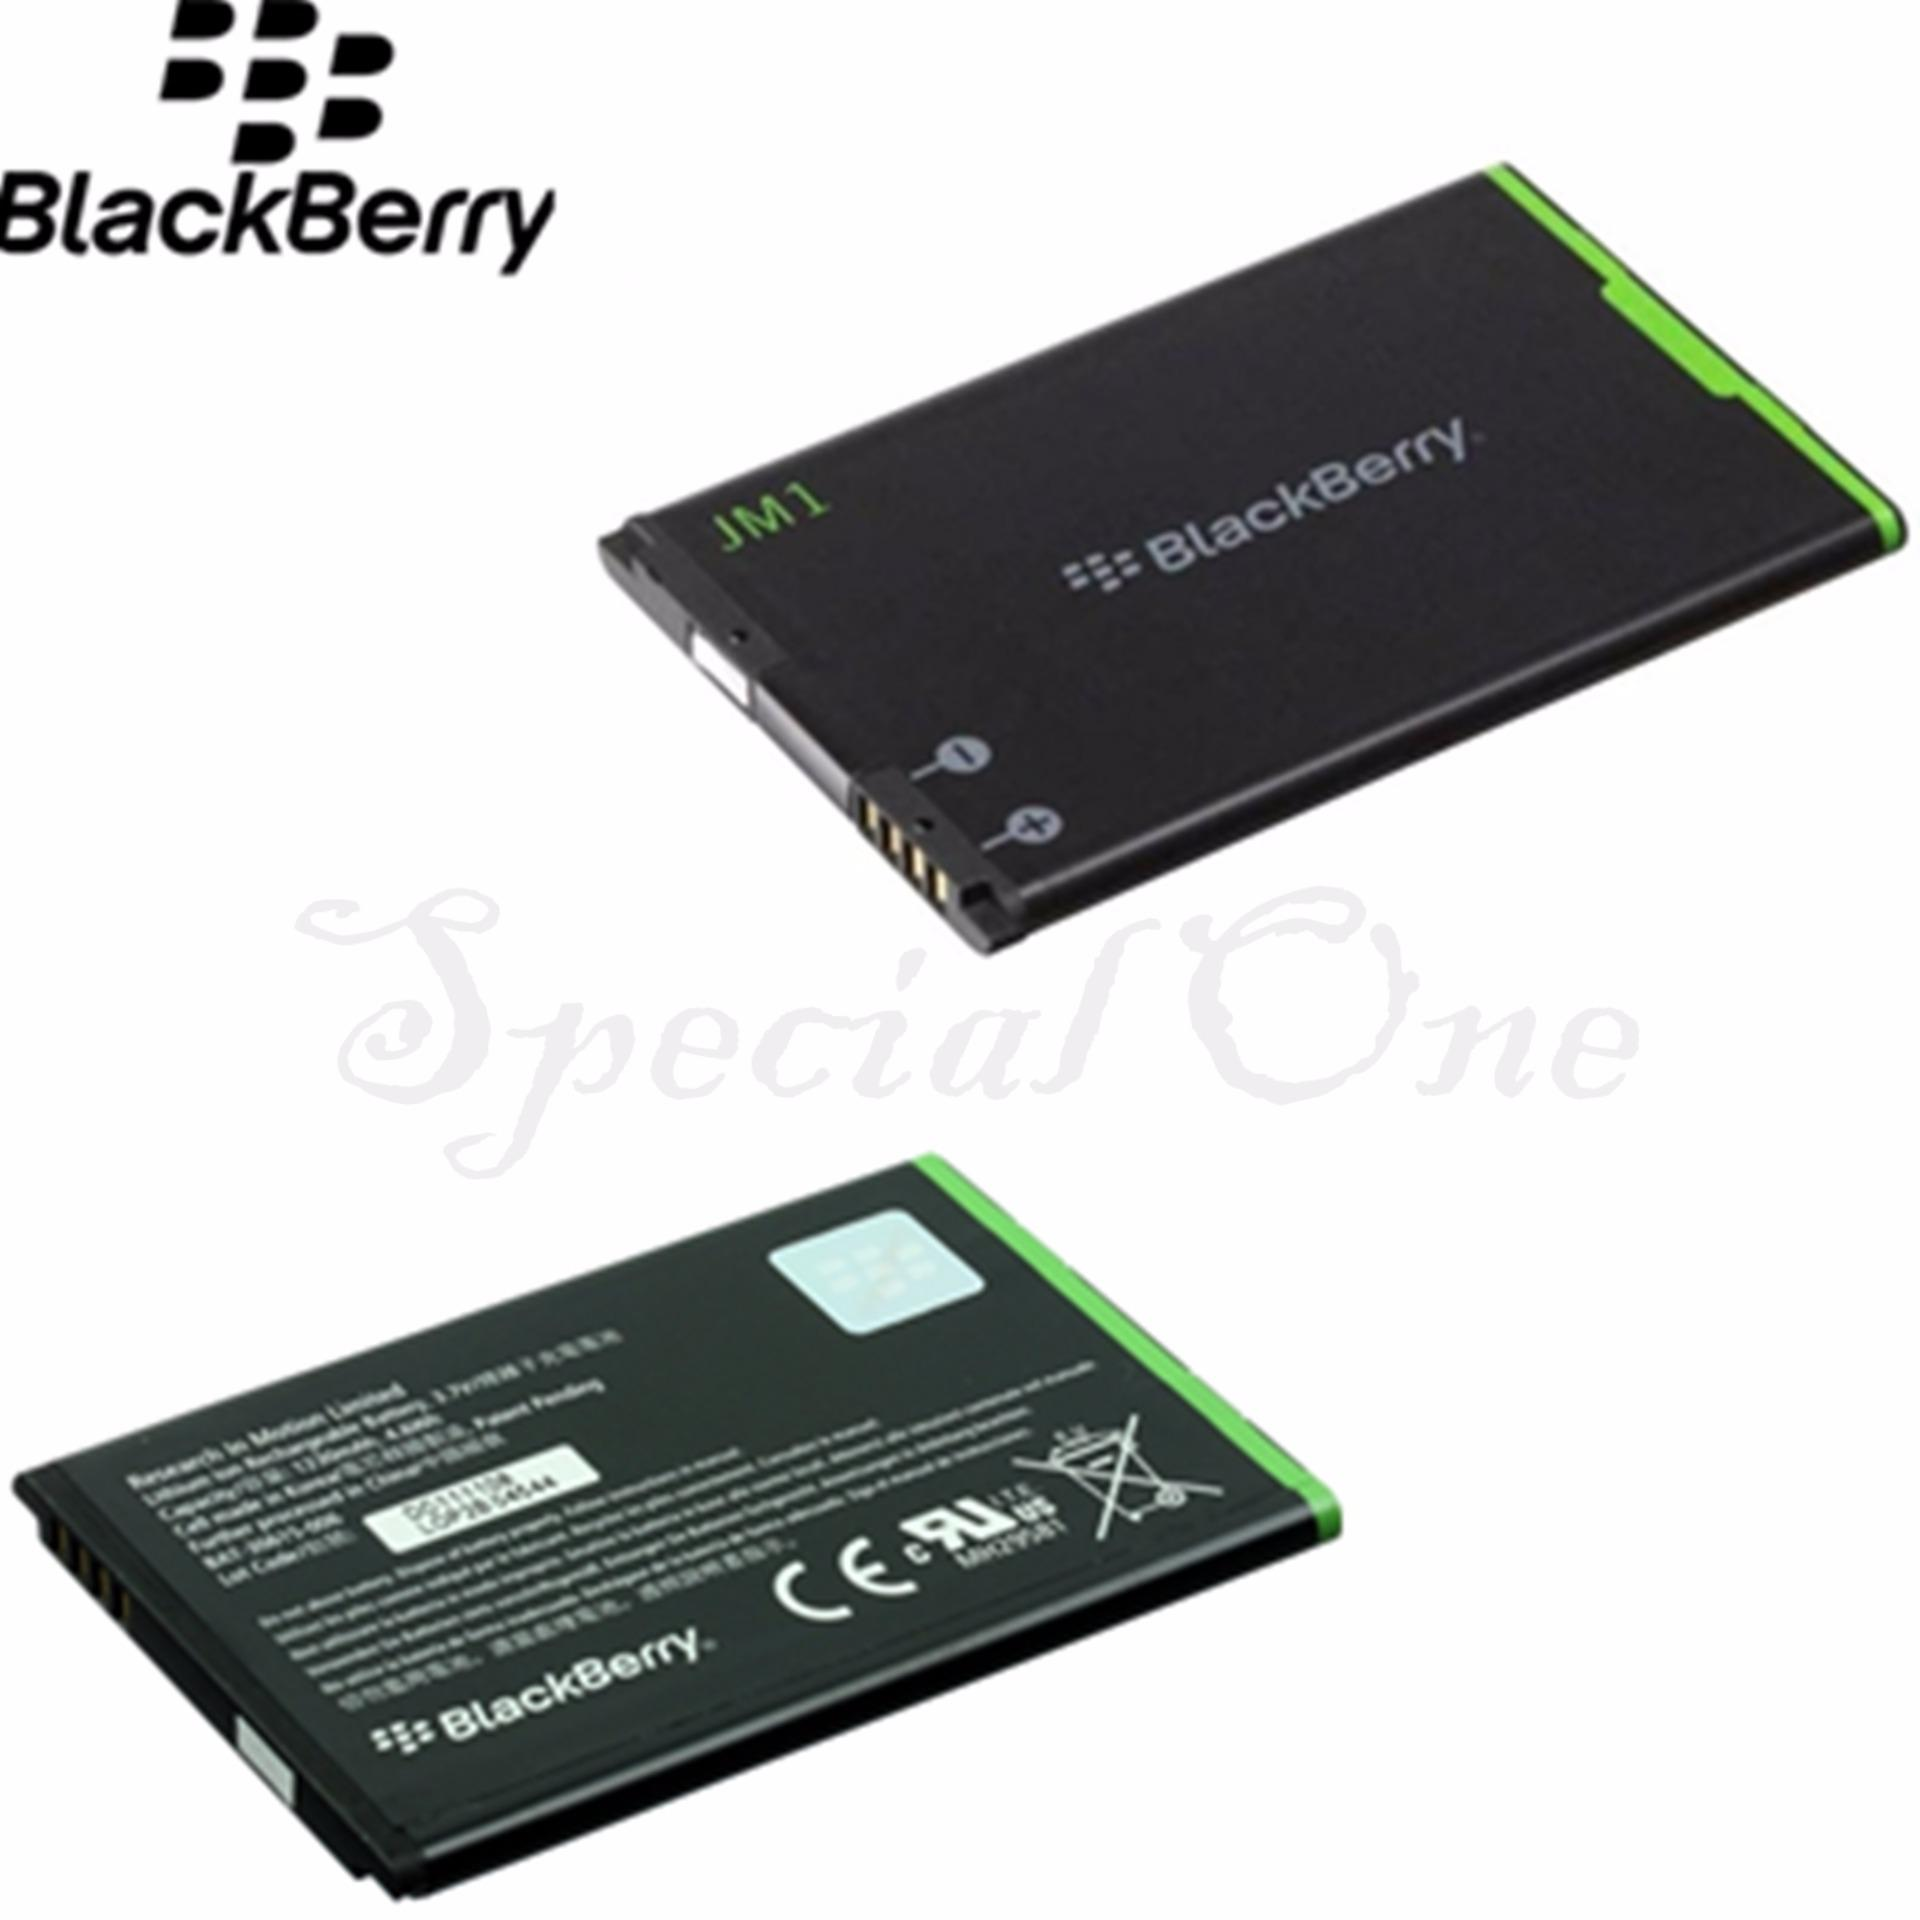 Blackberry Original Battery Type JM1 Baterai for BOLD/CURVE/TORCH/9790/9850/9860/9900/9930/9380